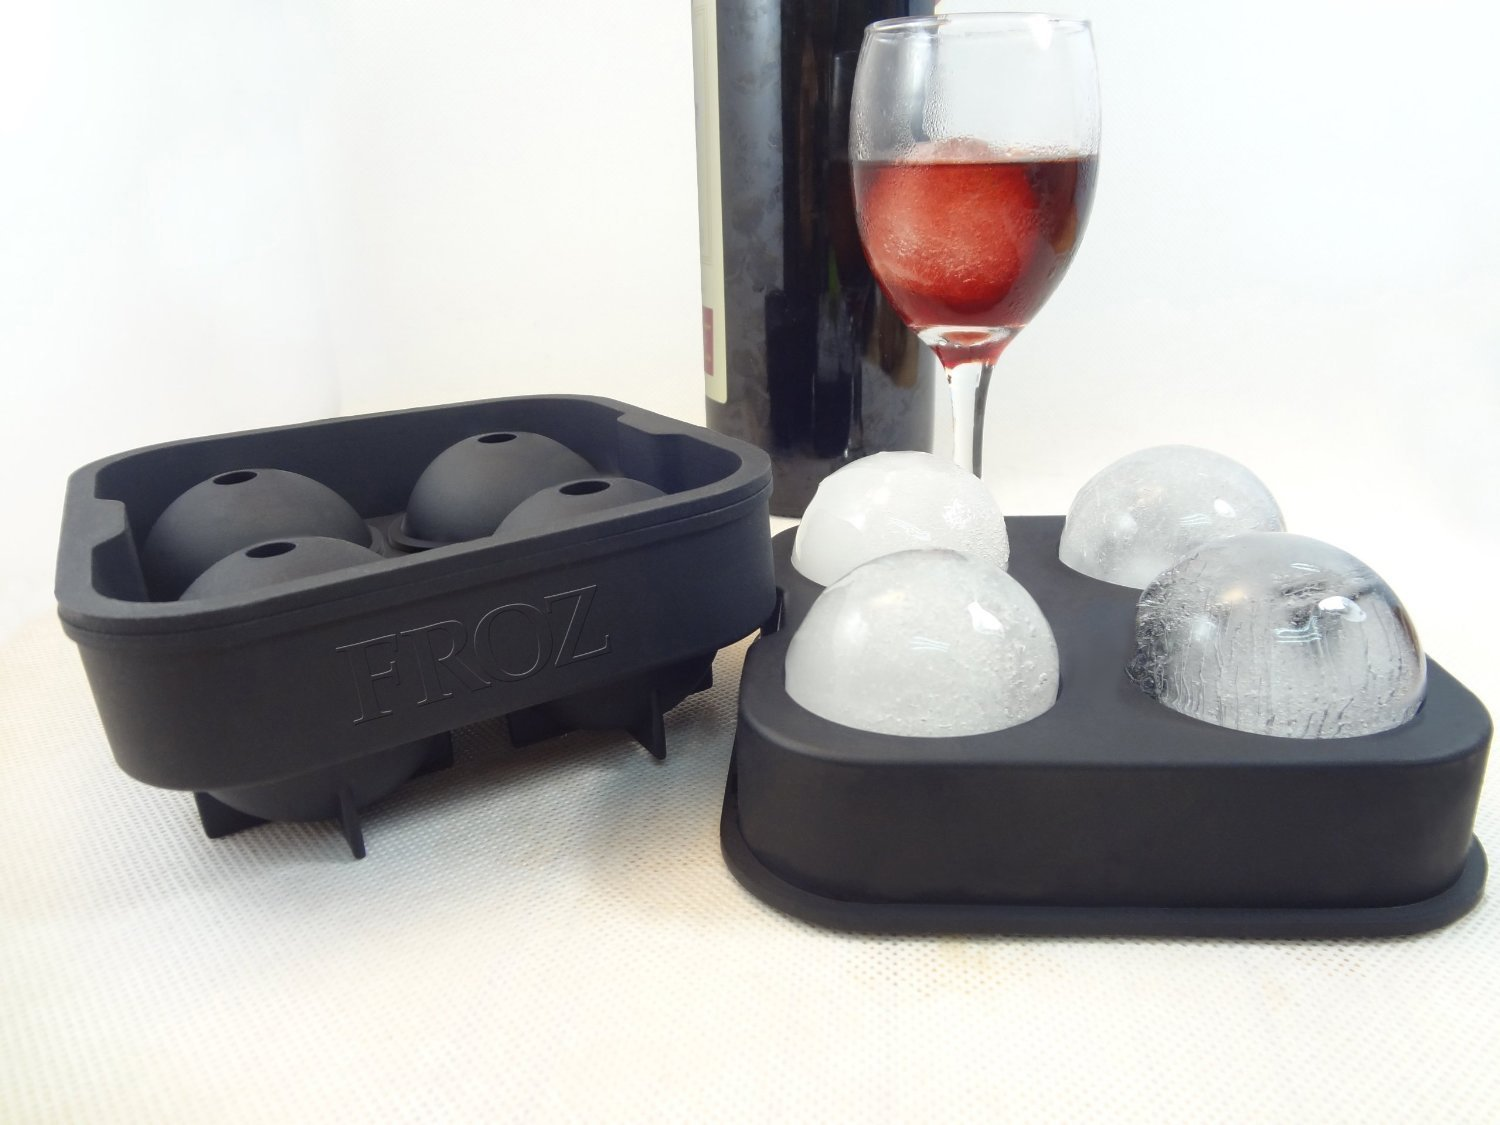 Froz Ice Ball Maker Novelty Food-Grade Silicone Ice Mold Tray With 4 X 4.5cm Ball Capacity